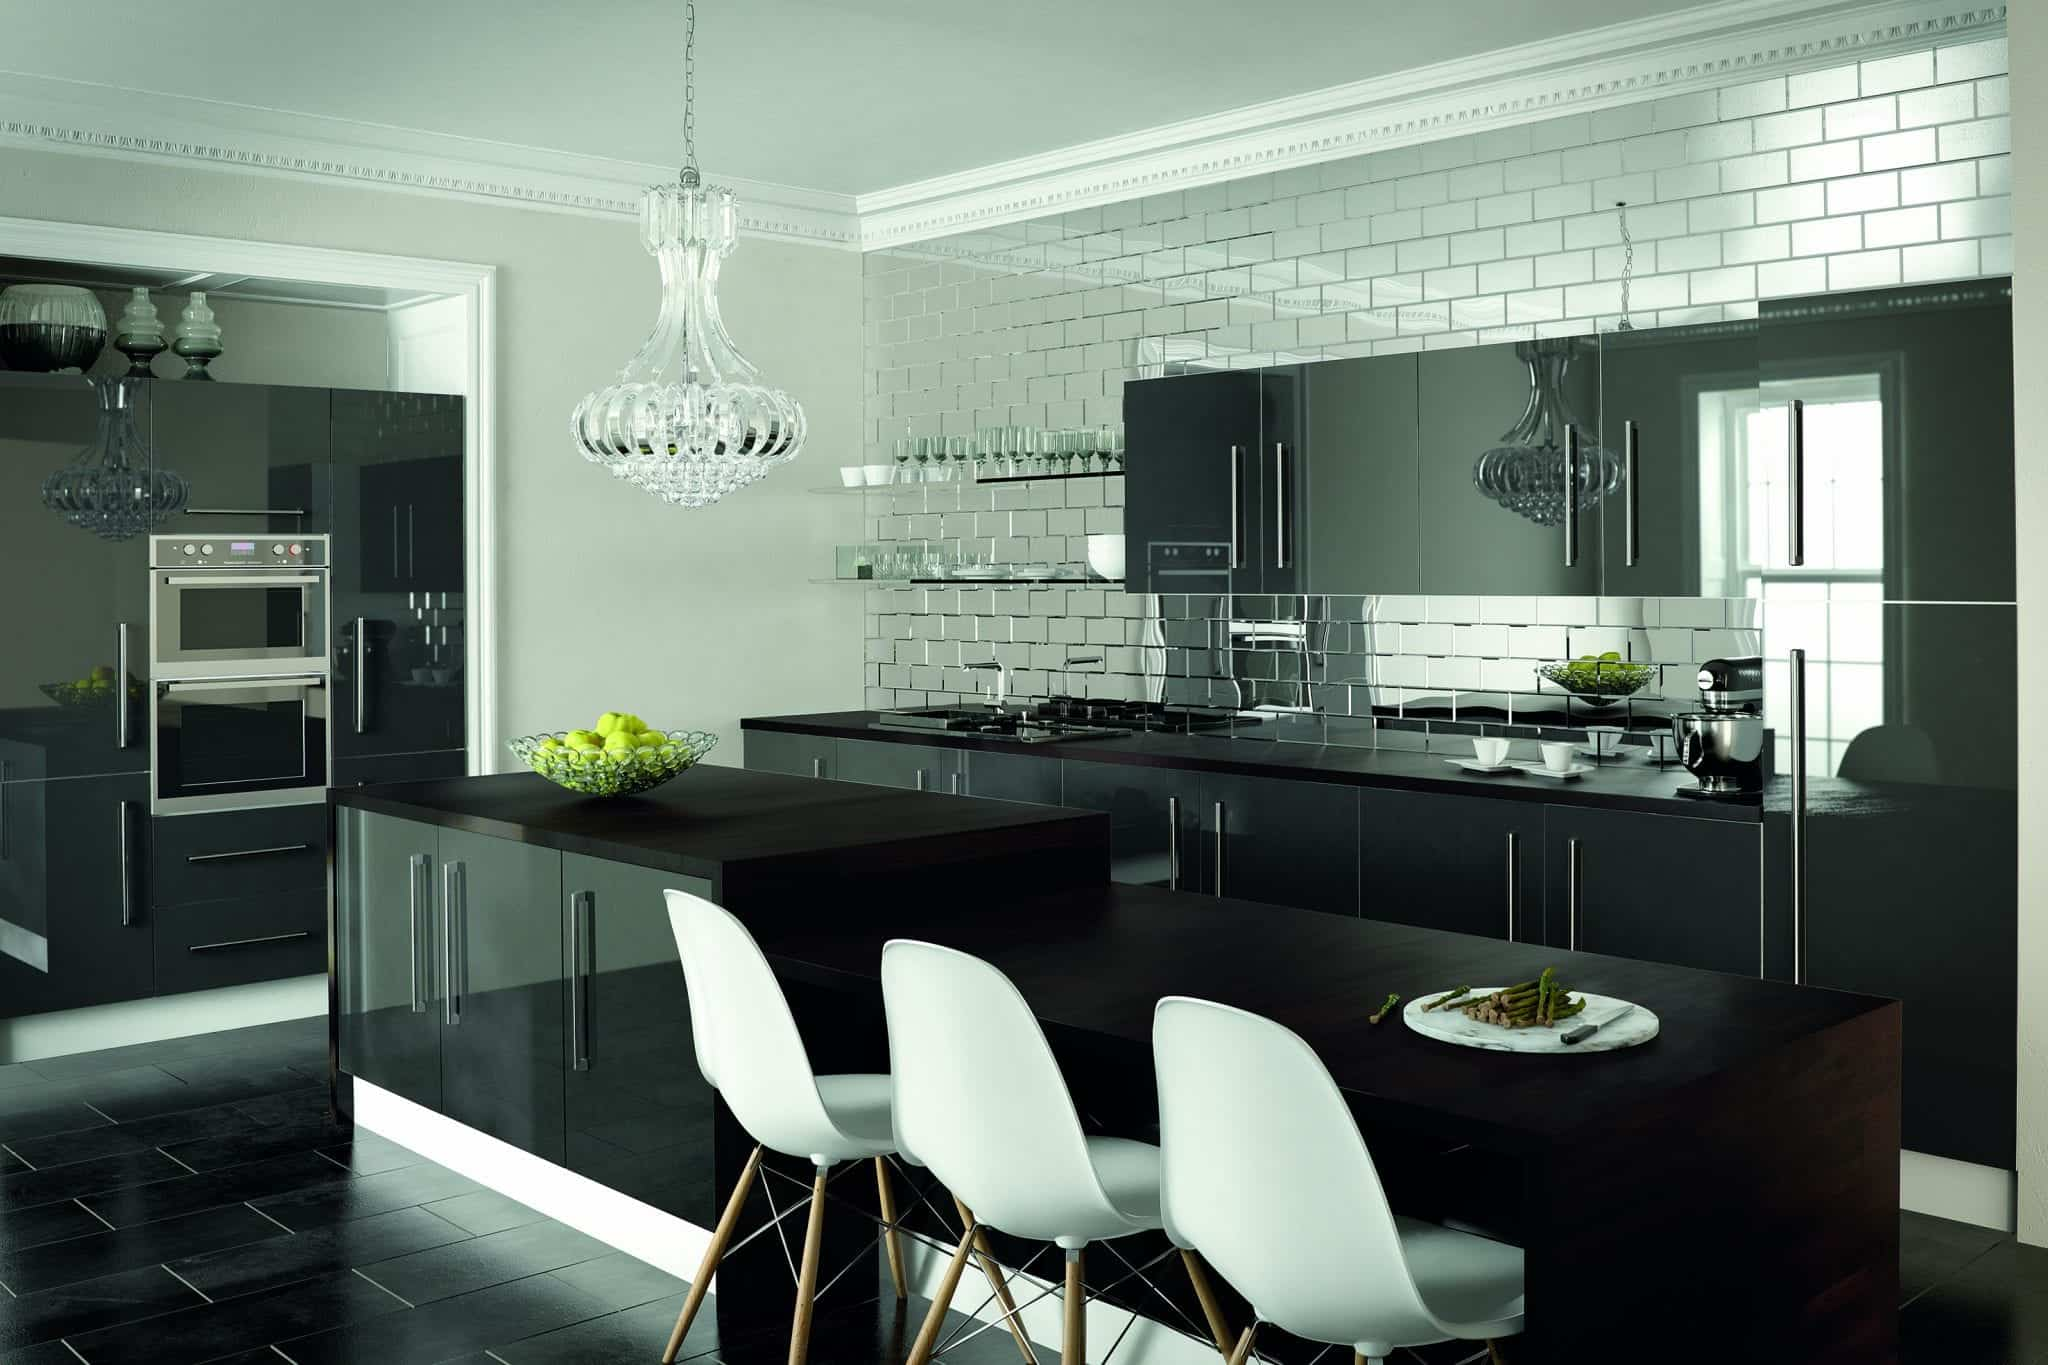 Kitchen in metallic anthracite grey